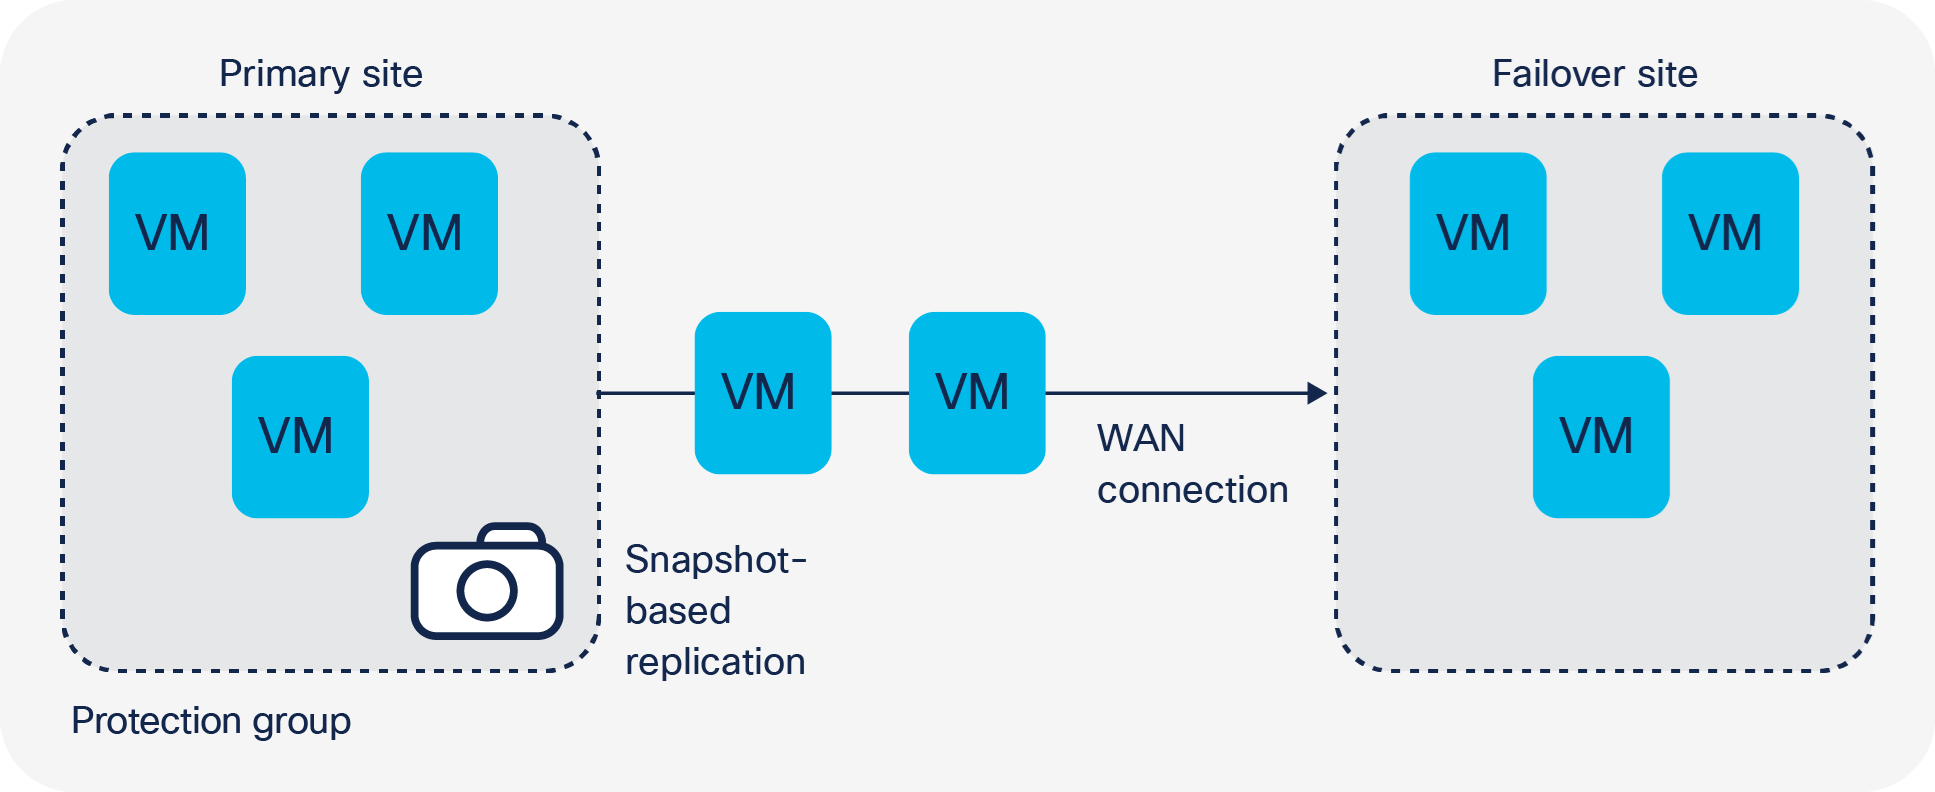 Cisco HyperFlex Connect enables you to define protection groups down to the virtual machine level and choose the replication frequency